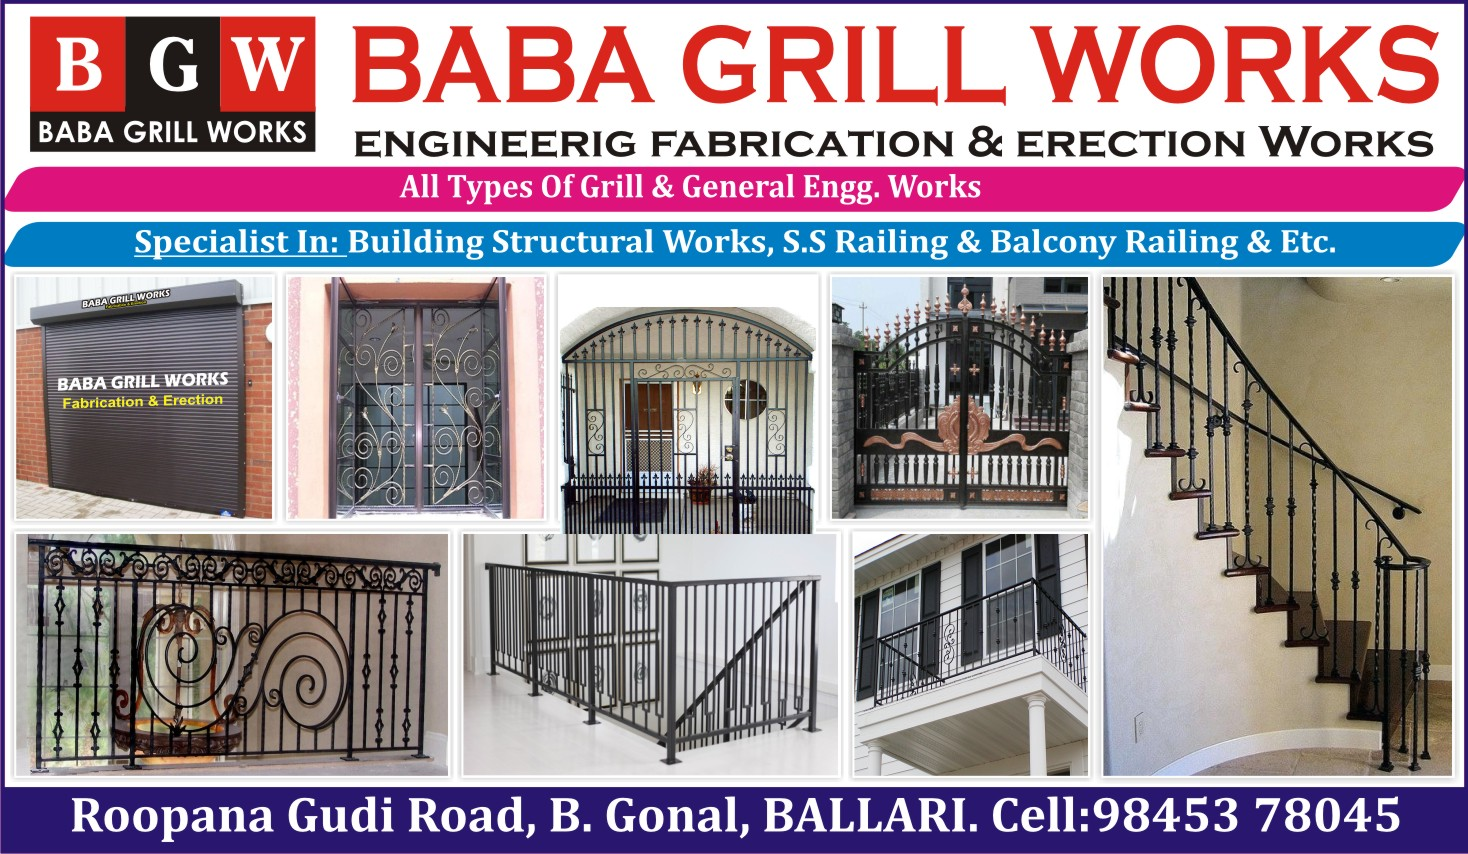 BABA GRILL WORKS